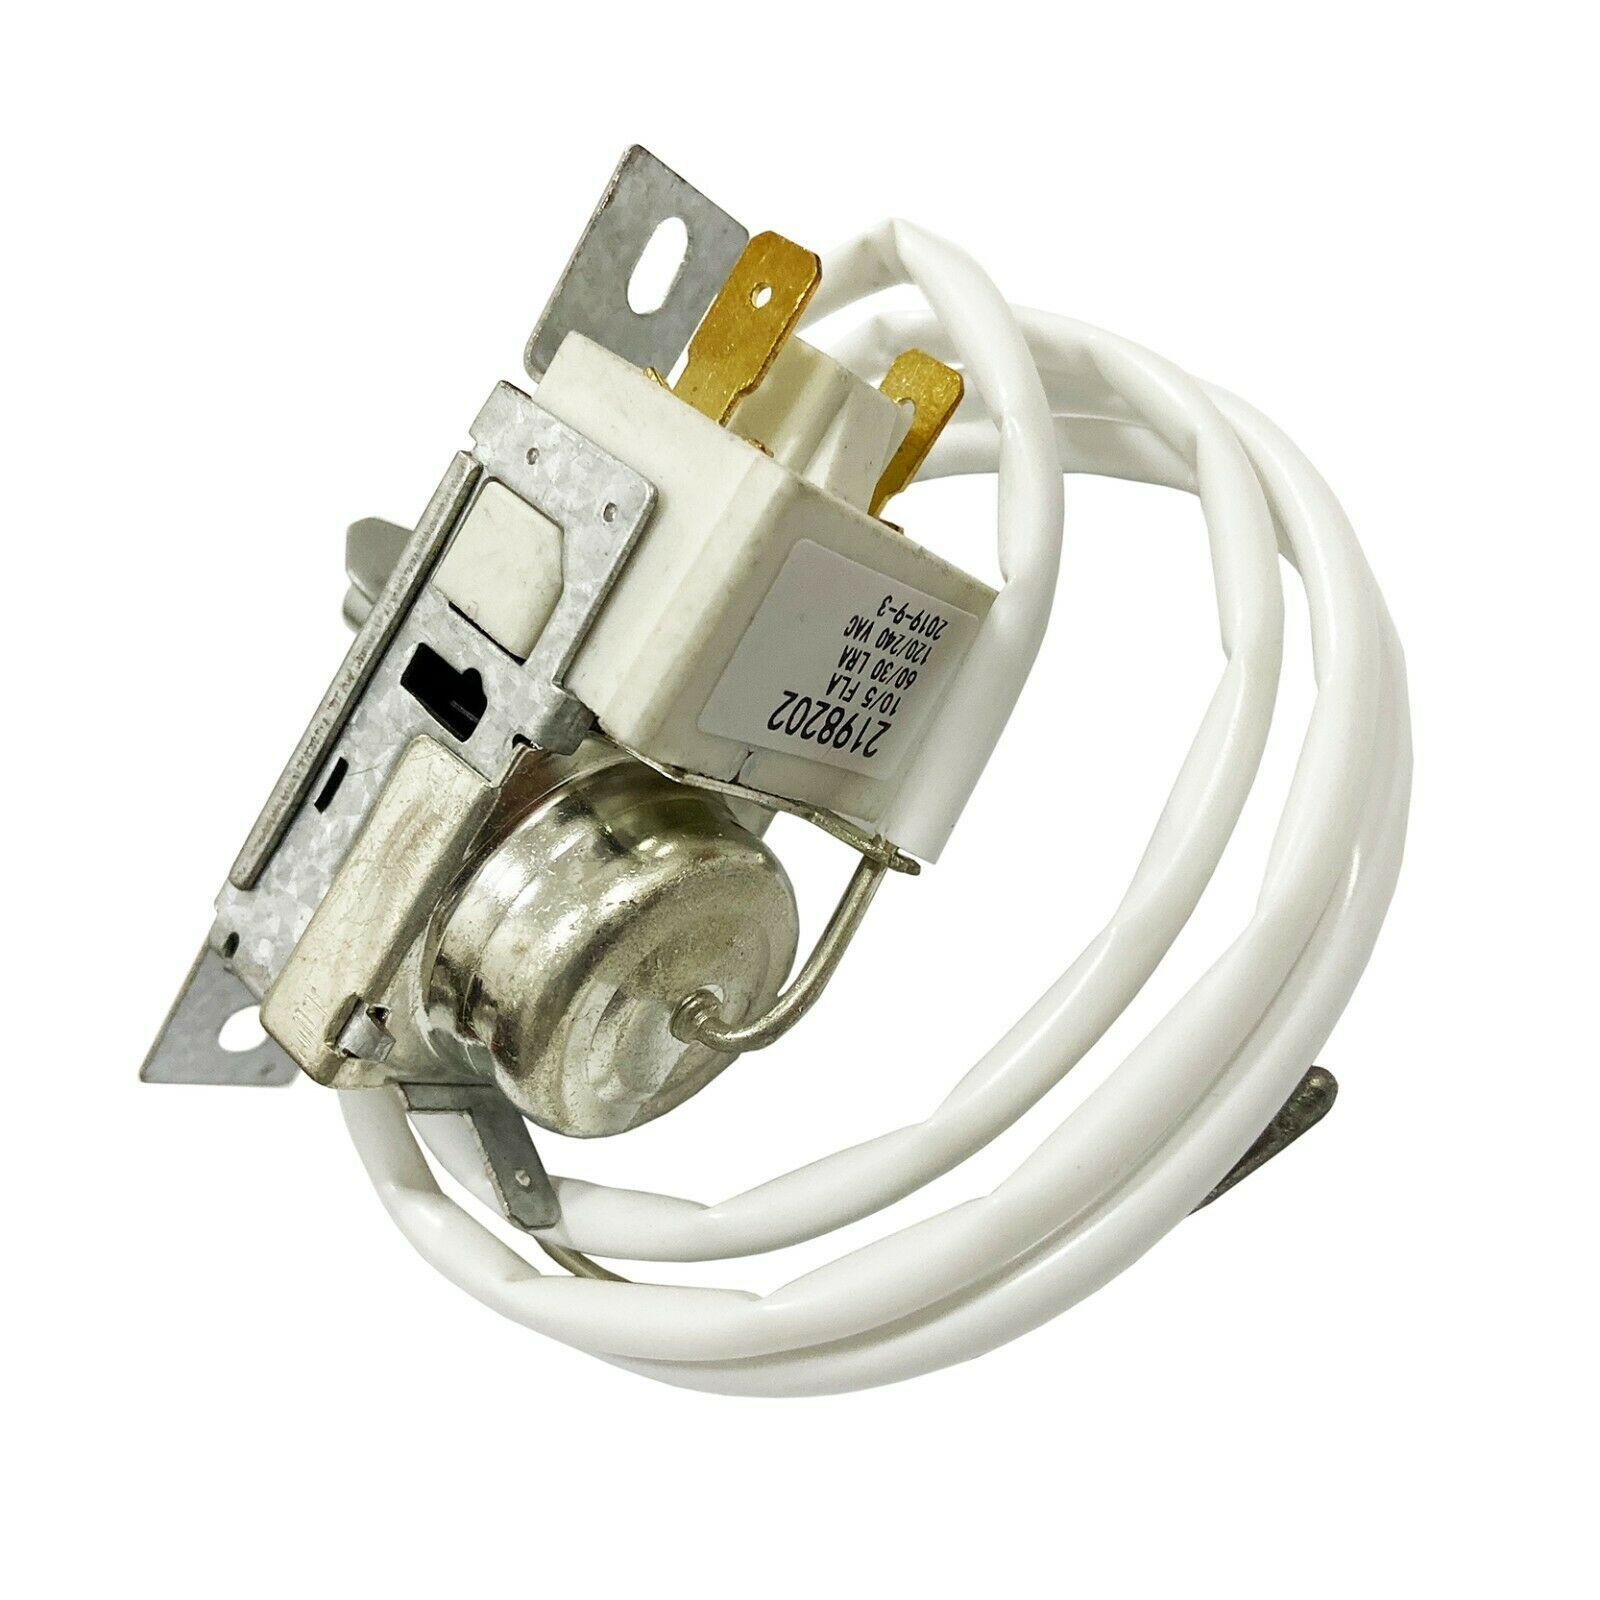 NEW REFRIGERATOR COLD CONTROL THERMOSTAT FOR WHIRLPOOL KENMORE ROPER 2198202 USA